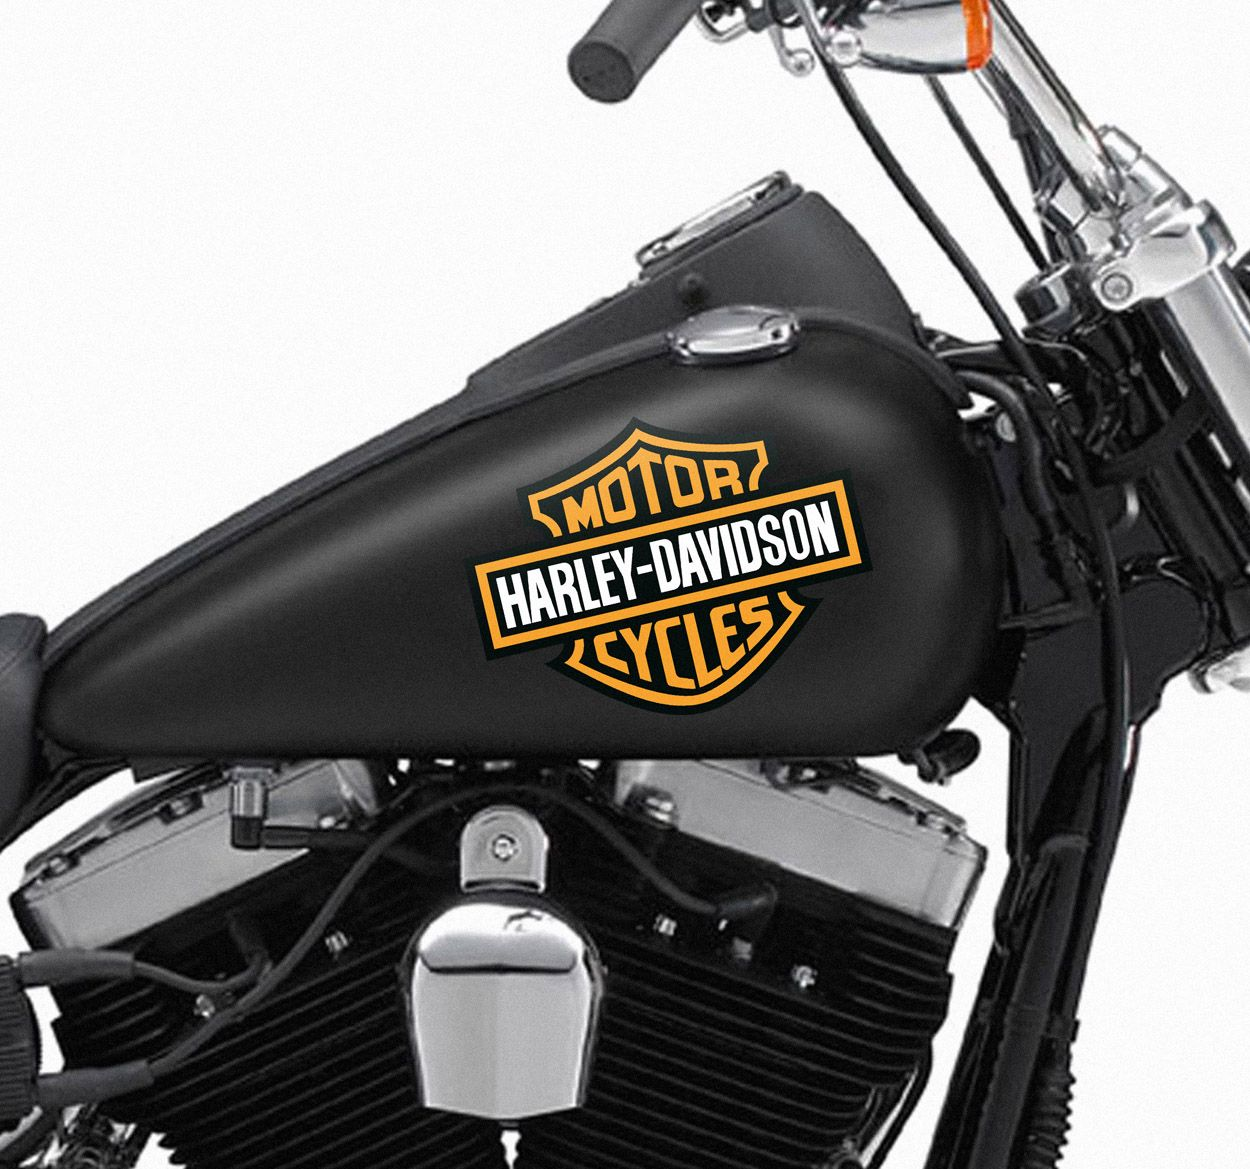 A Great Sticker Of The Harley Davidson Logo To Decorate Your - Stickers for motorcycles harley davidsonsbest harley davidson images on pinterest